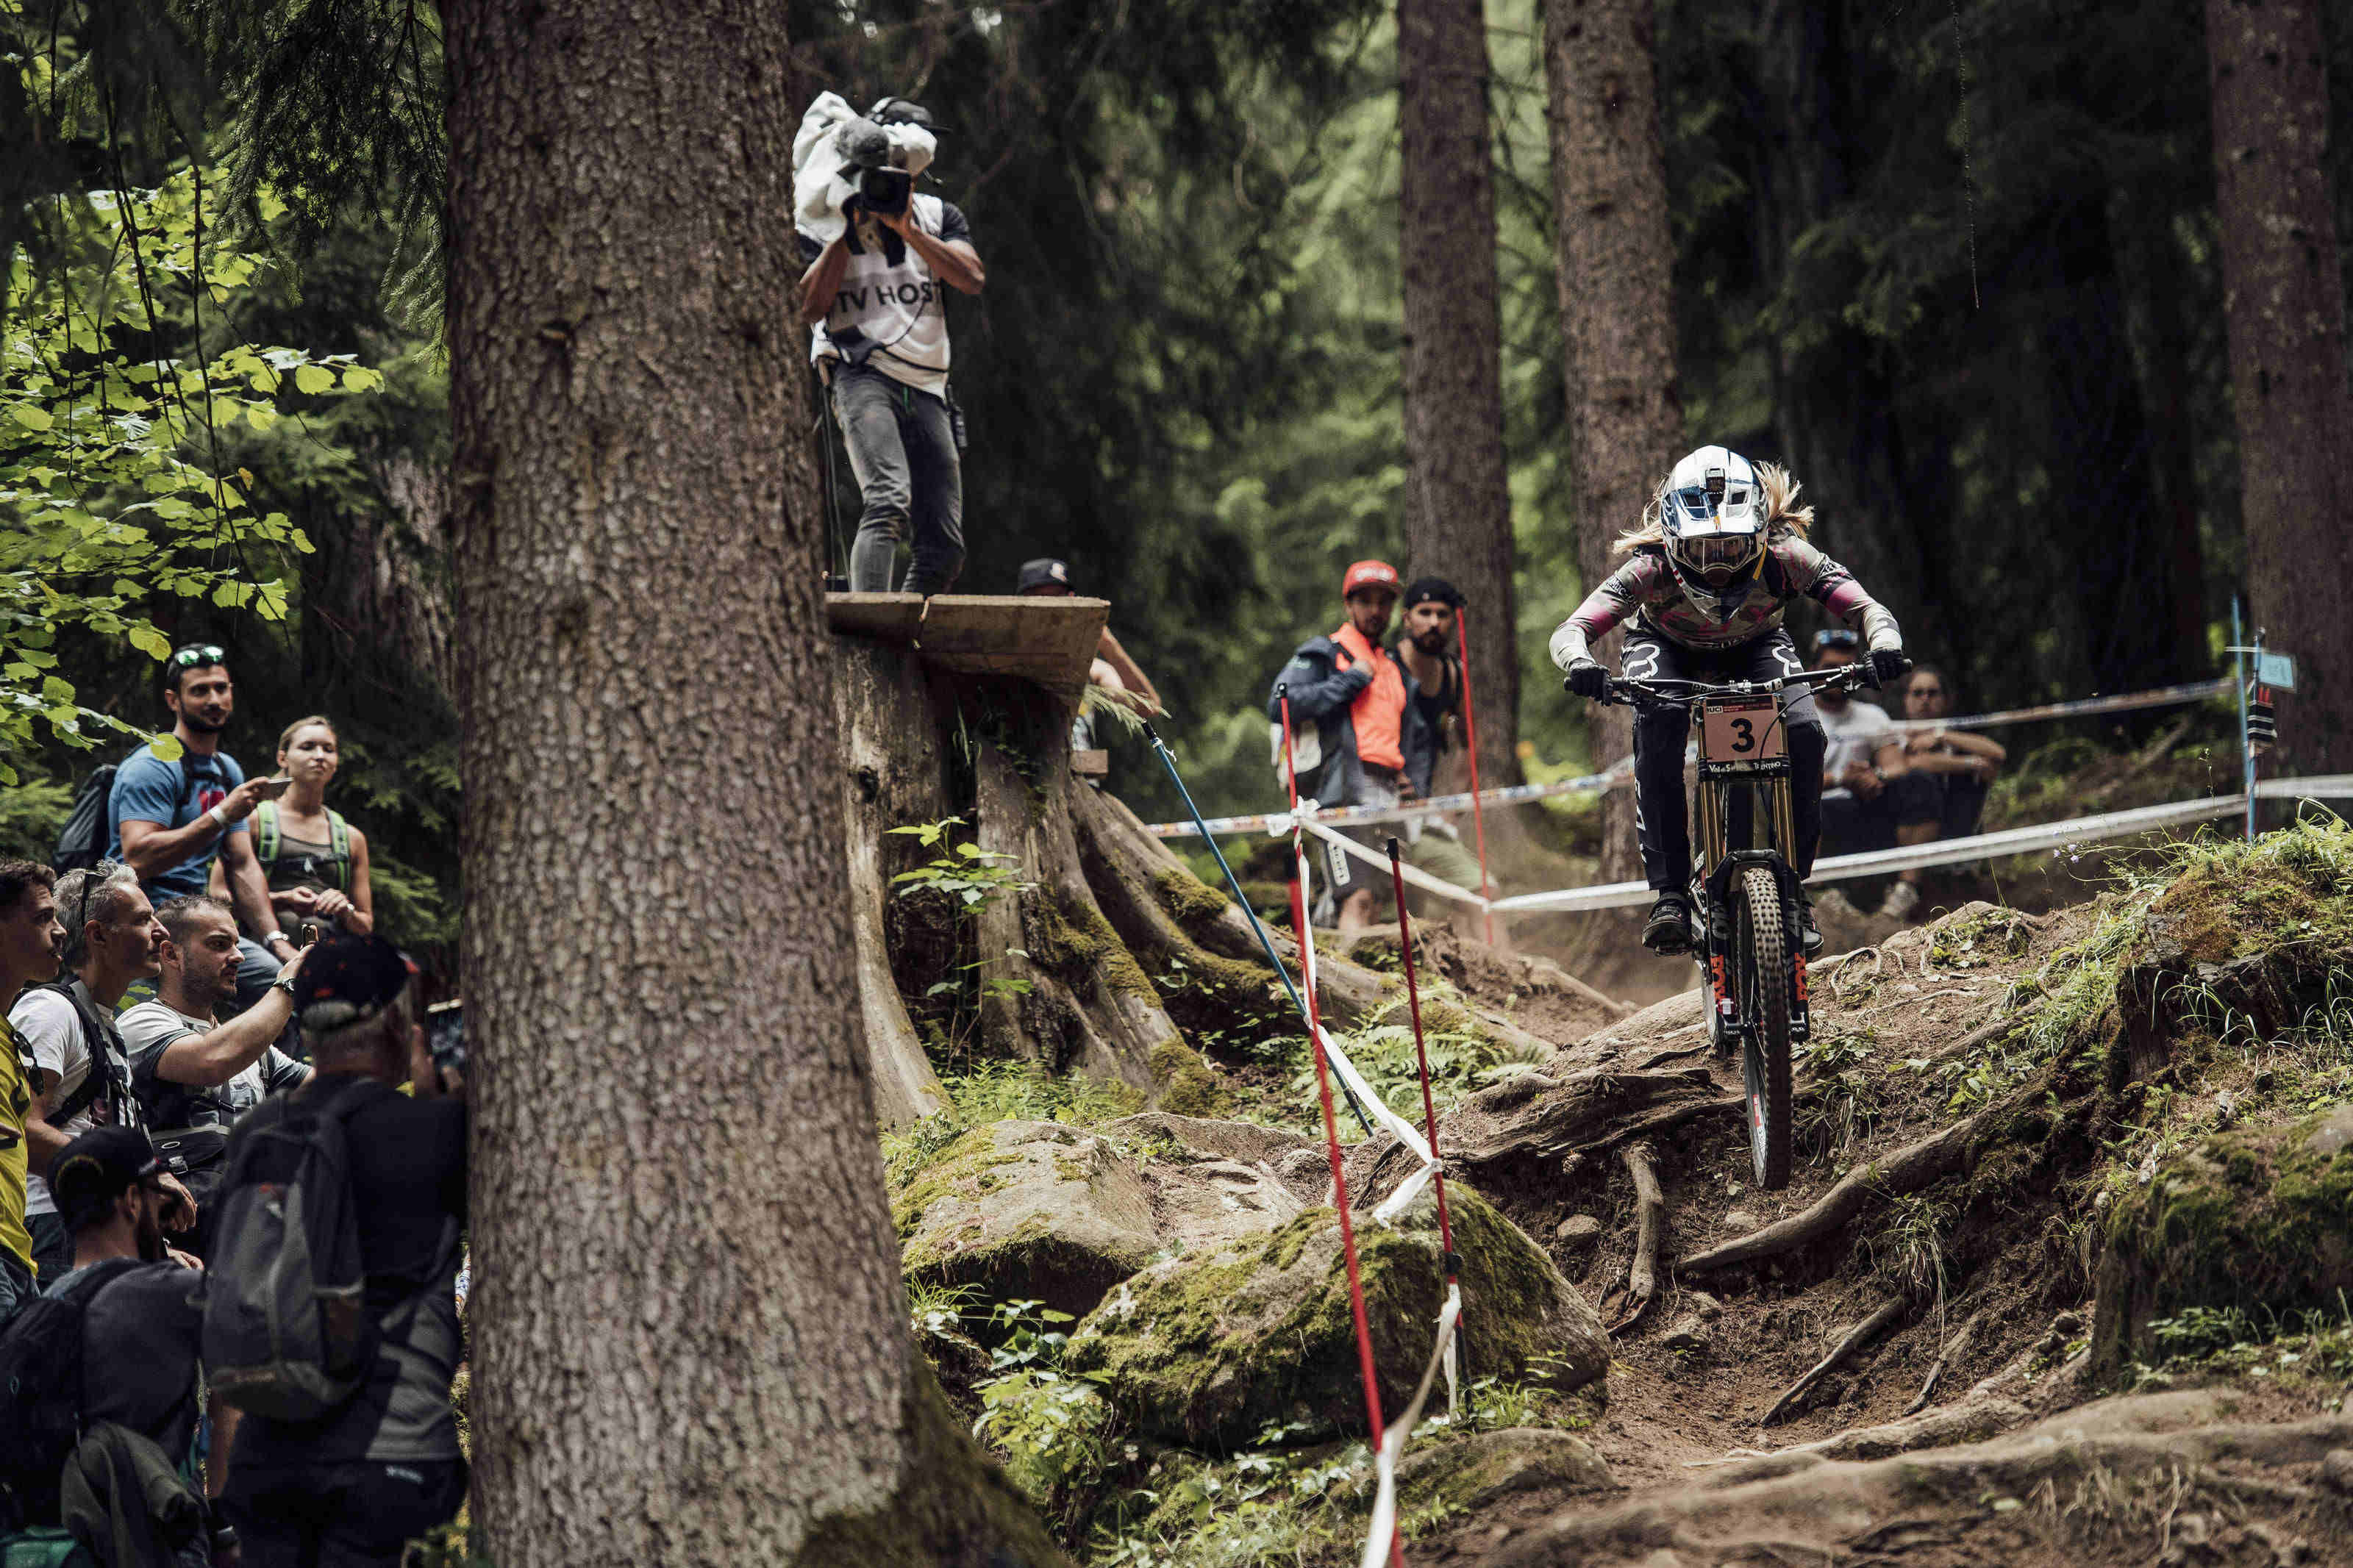 Val di Sole DH World Cup Highlights